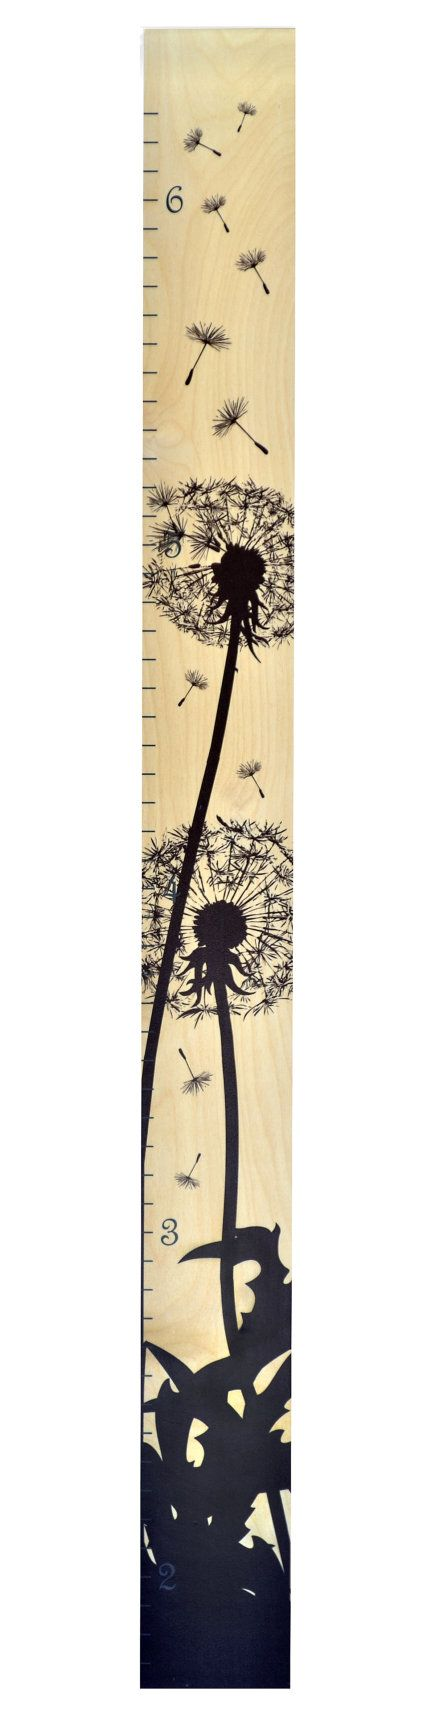 Dandelion Silhouette Modern Wooden Ruler Growth by GrowthChartArt, $70.00